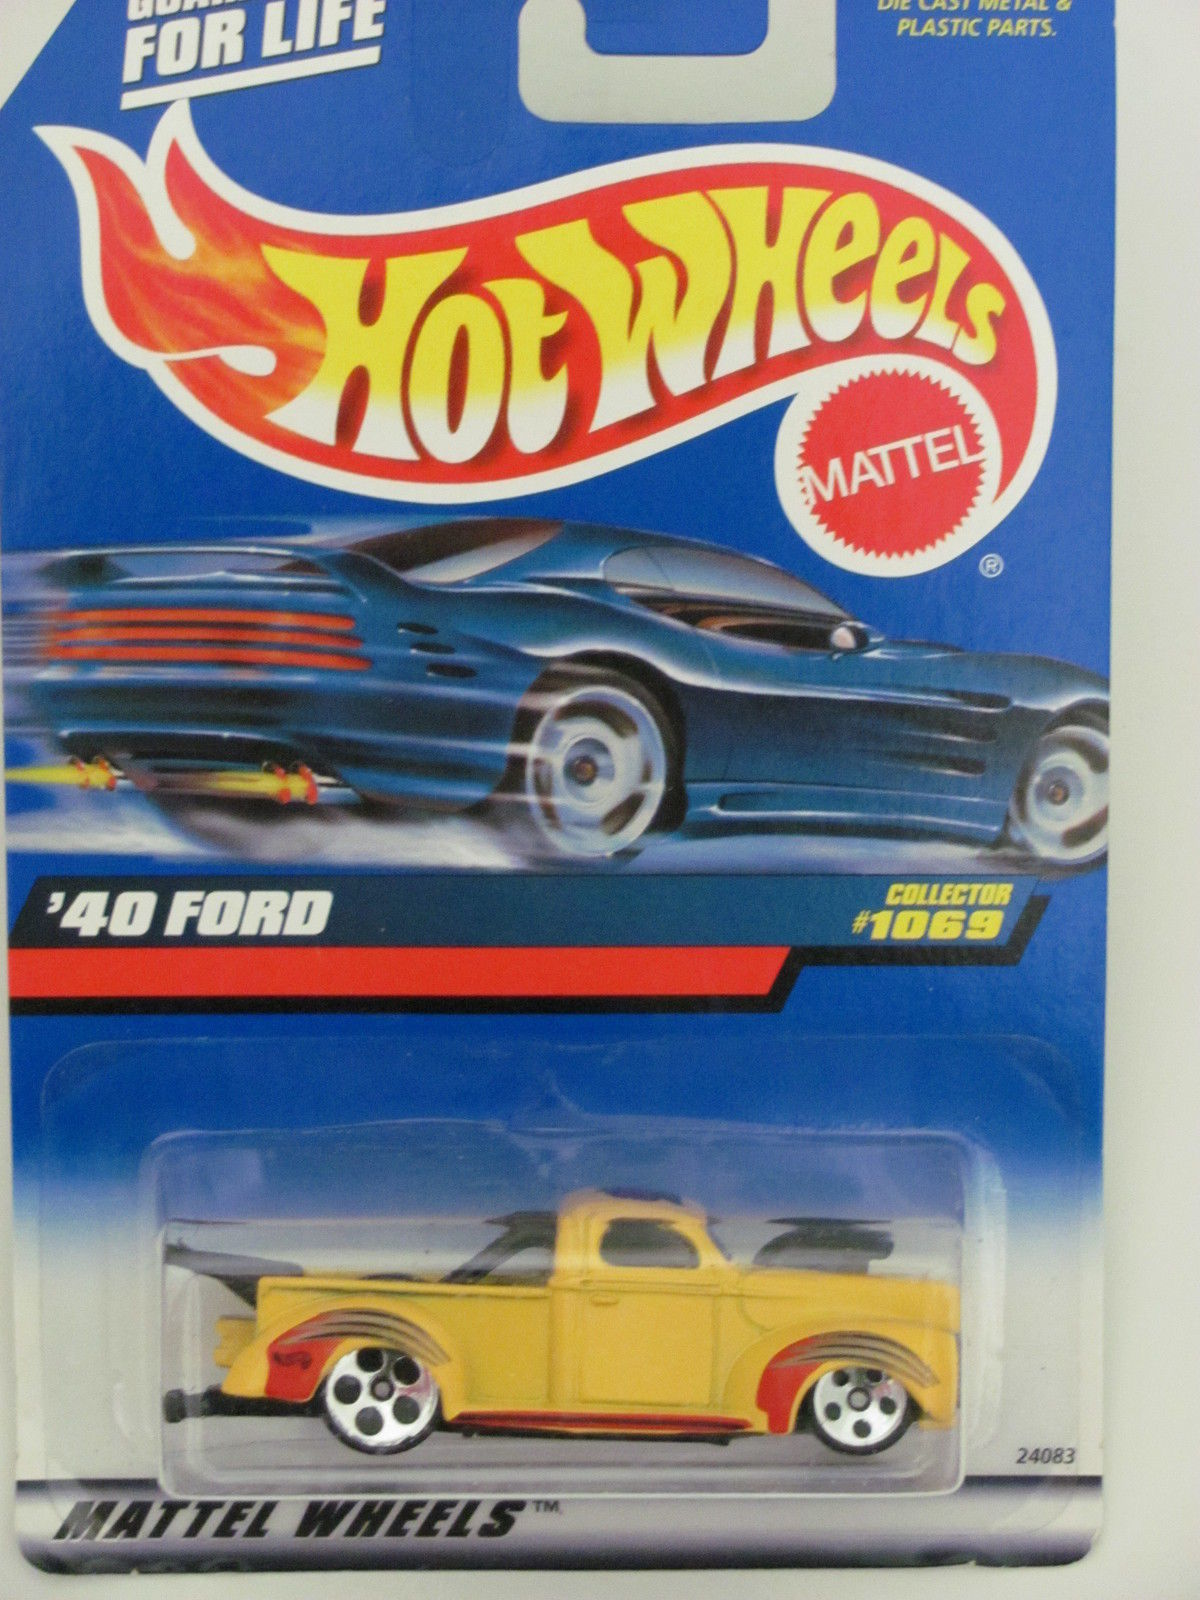 HOT WHEELS 1999 '40 FORD COLLECT. #1069 YELLOW